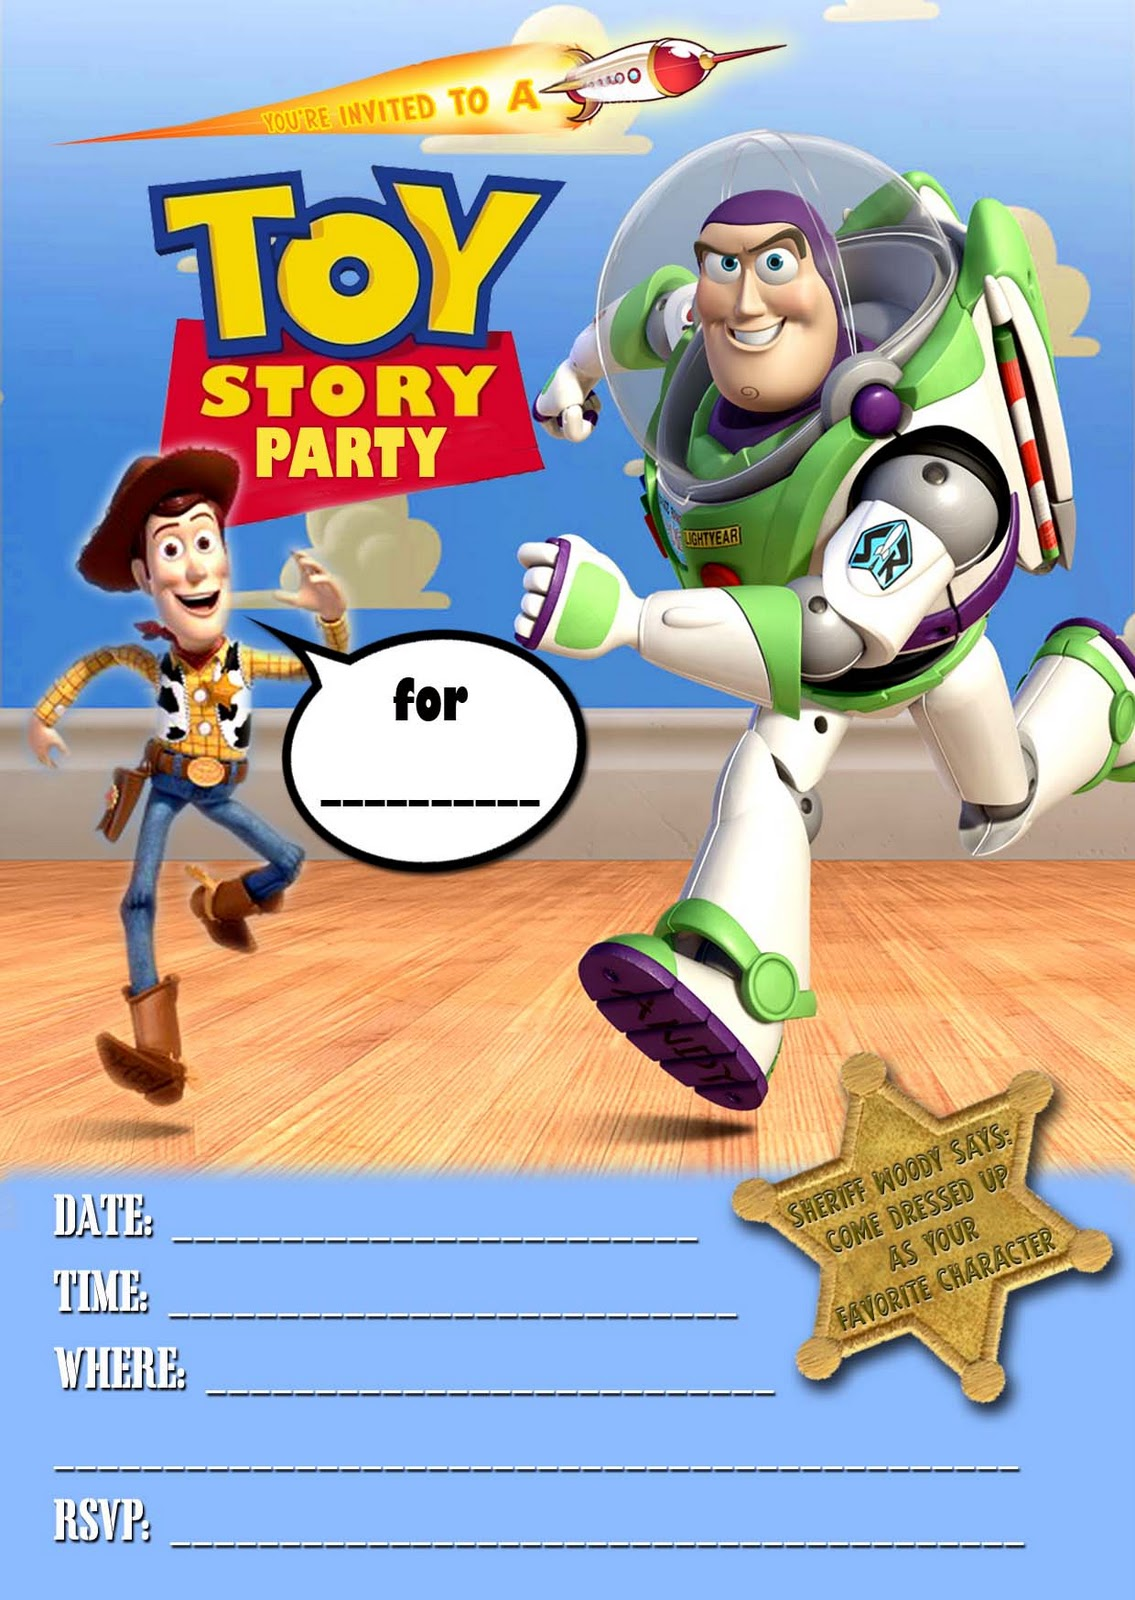 Irresistible image intended for free printable toy story invitations